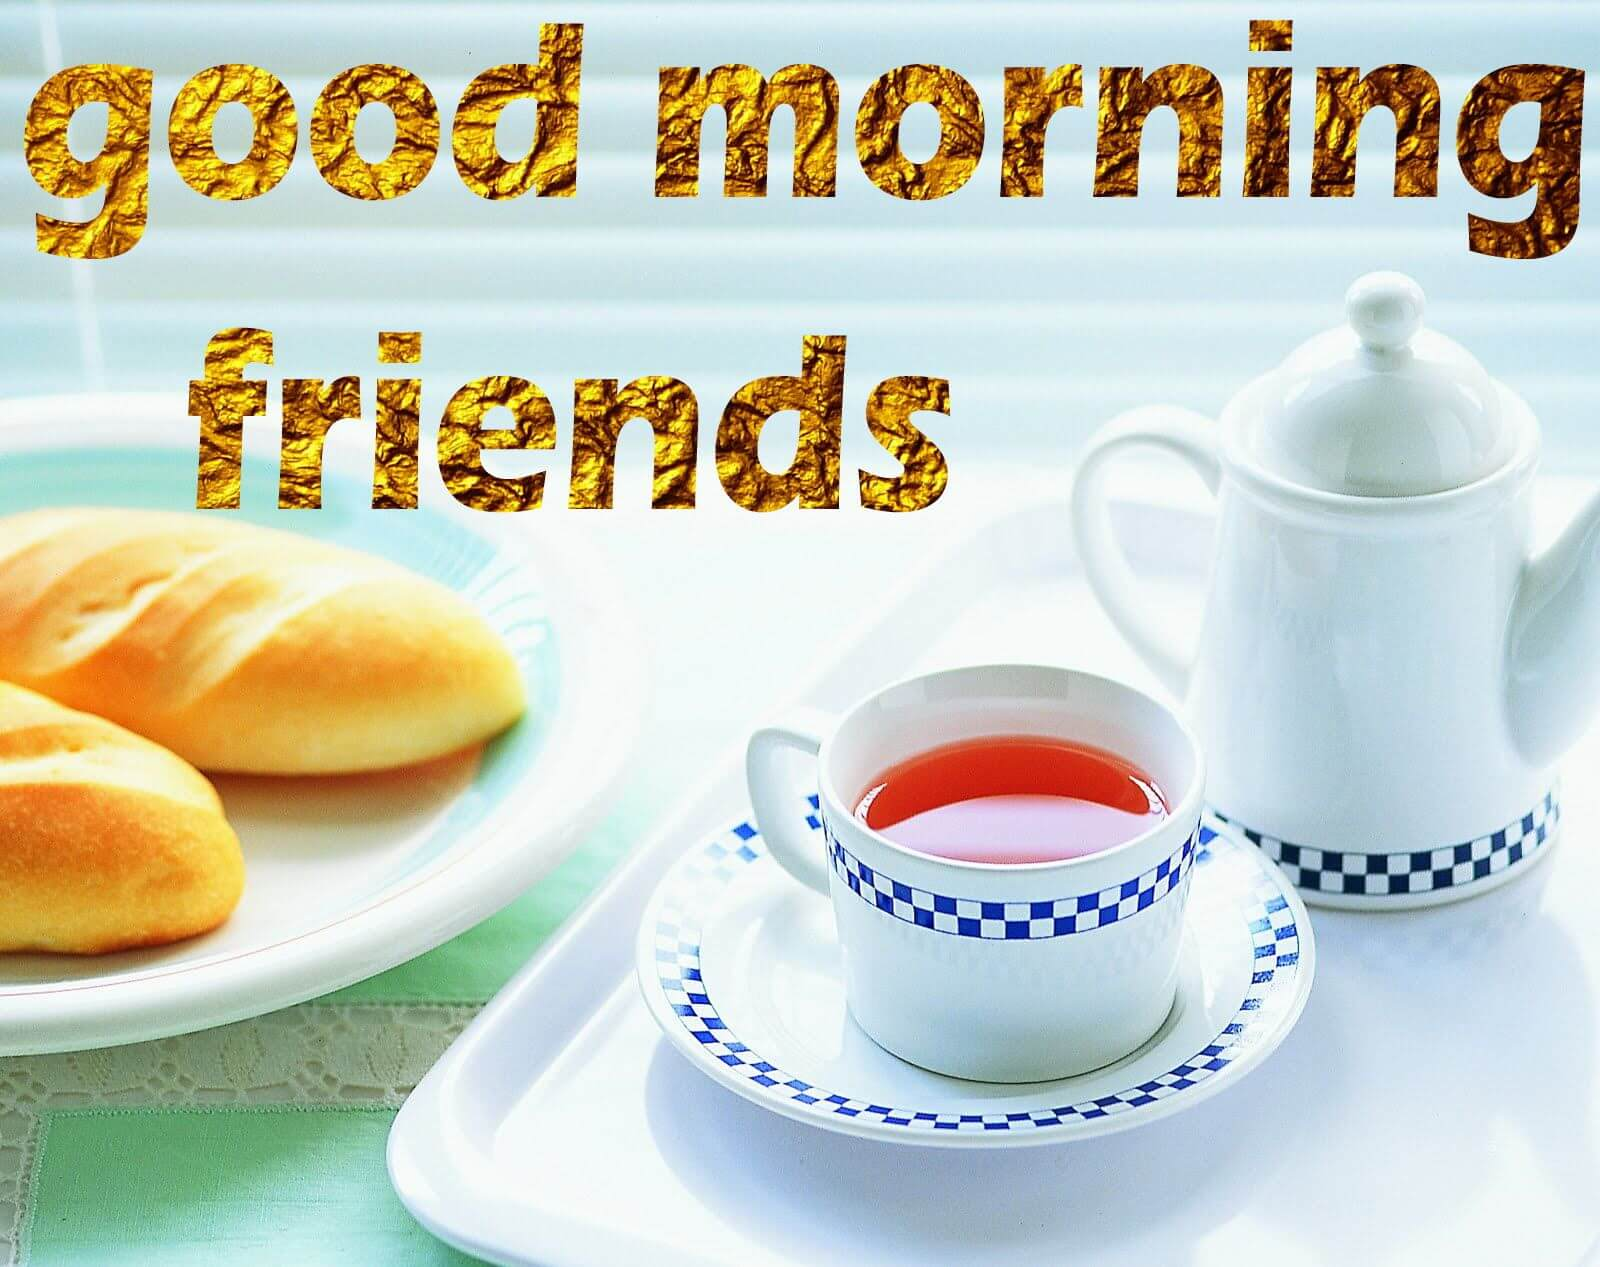 WWW Wallpaper Good Morning Com